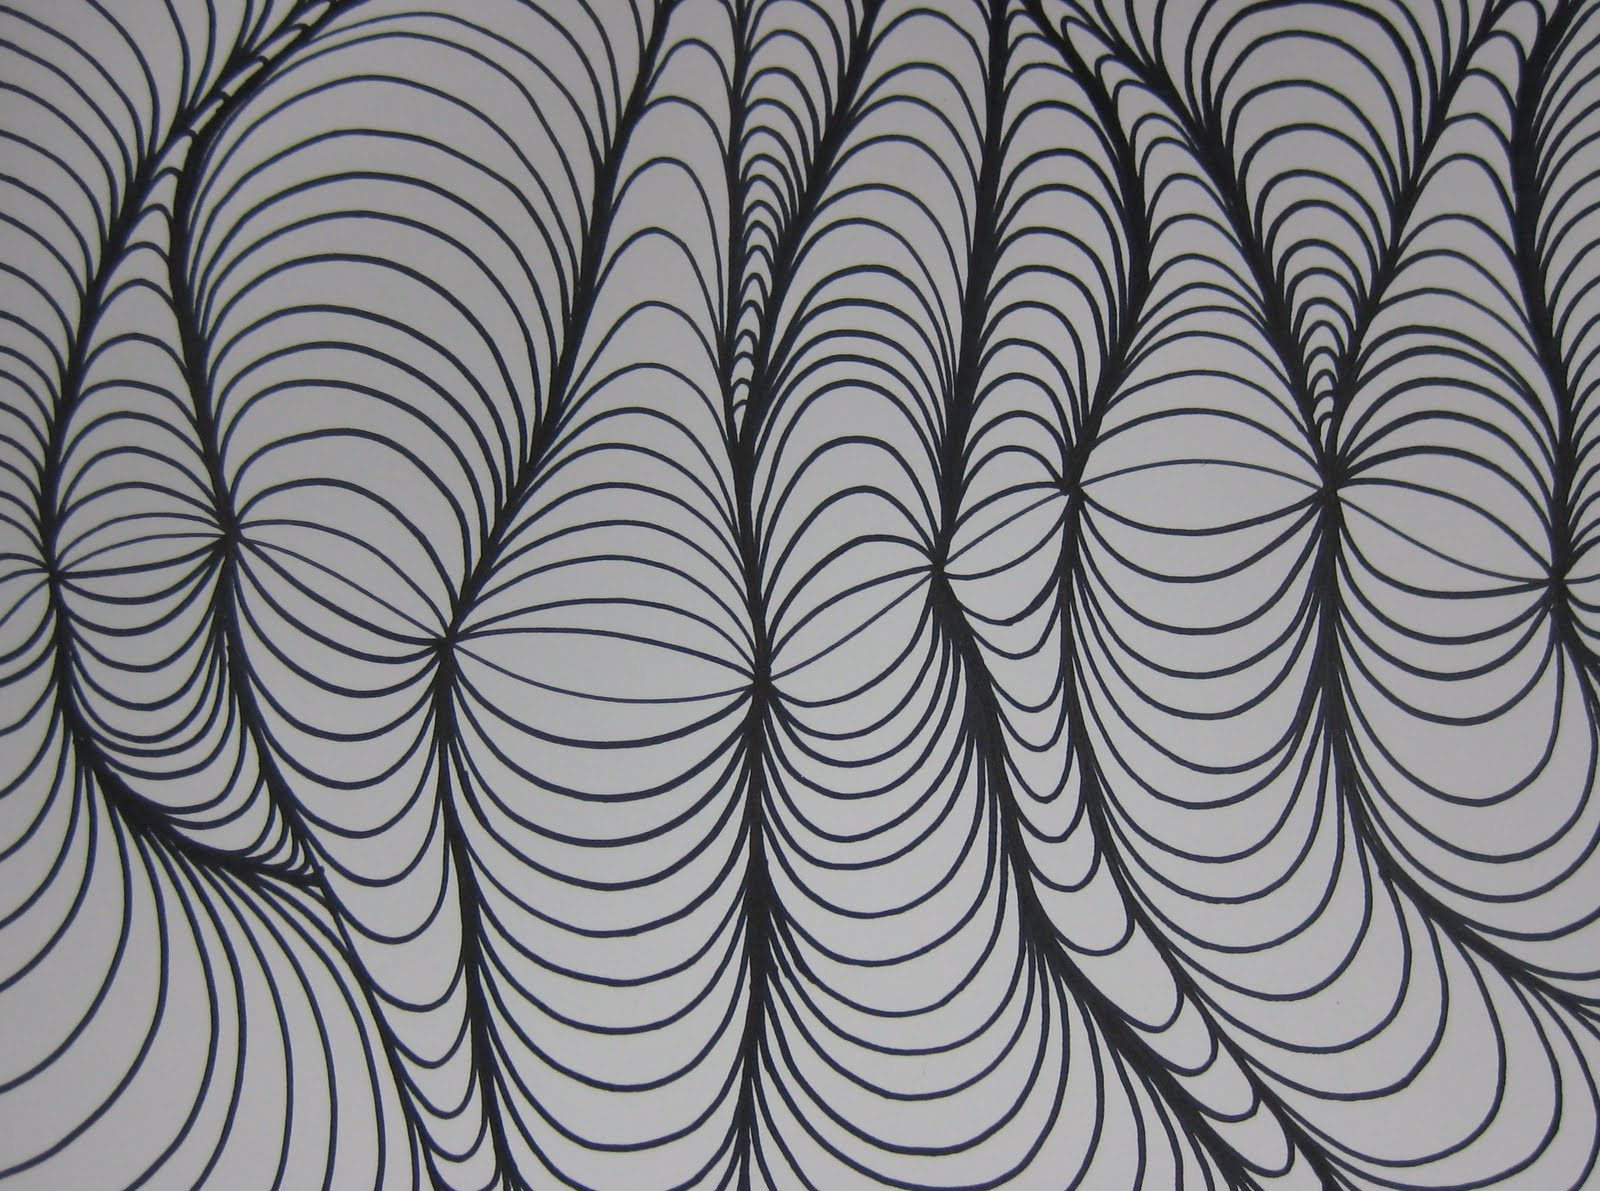 Line Design Op Art : Abstract designs to draw images cool easy